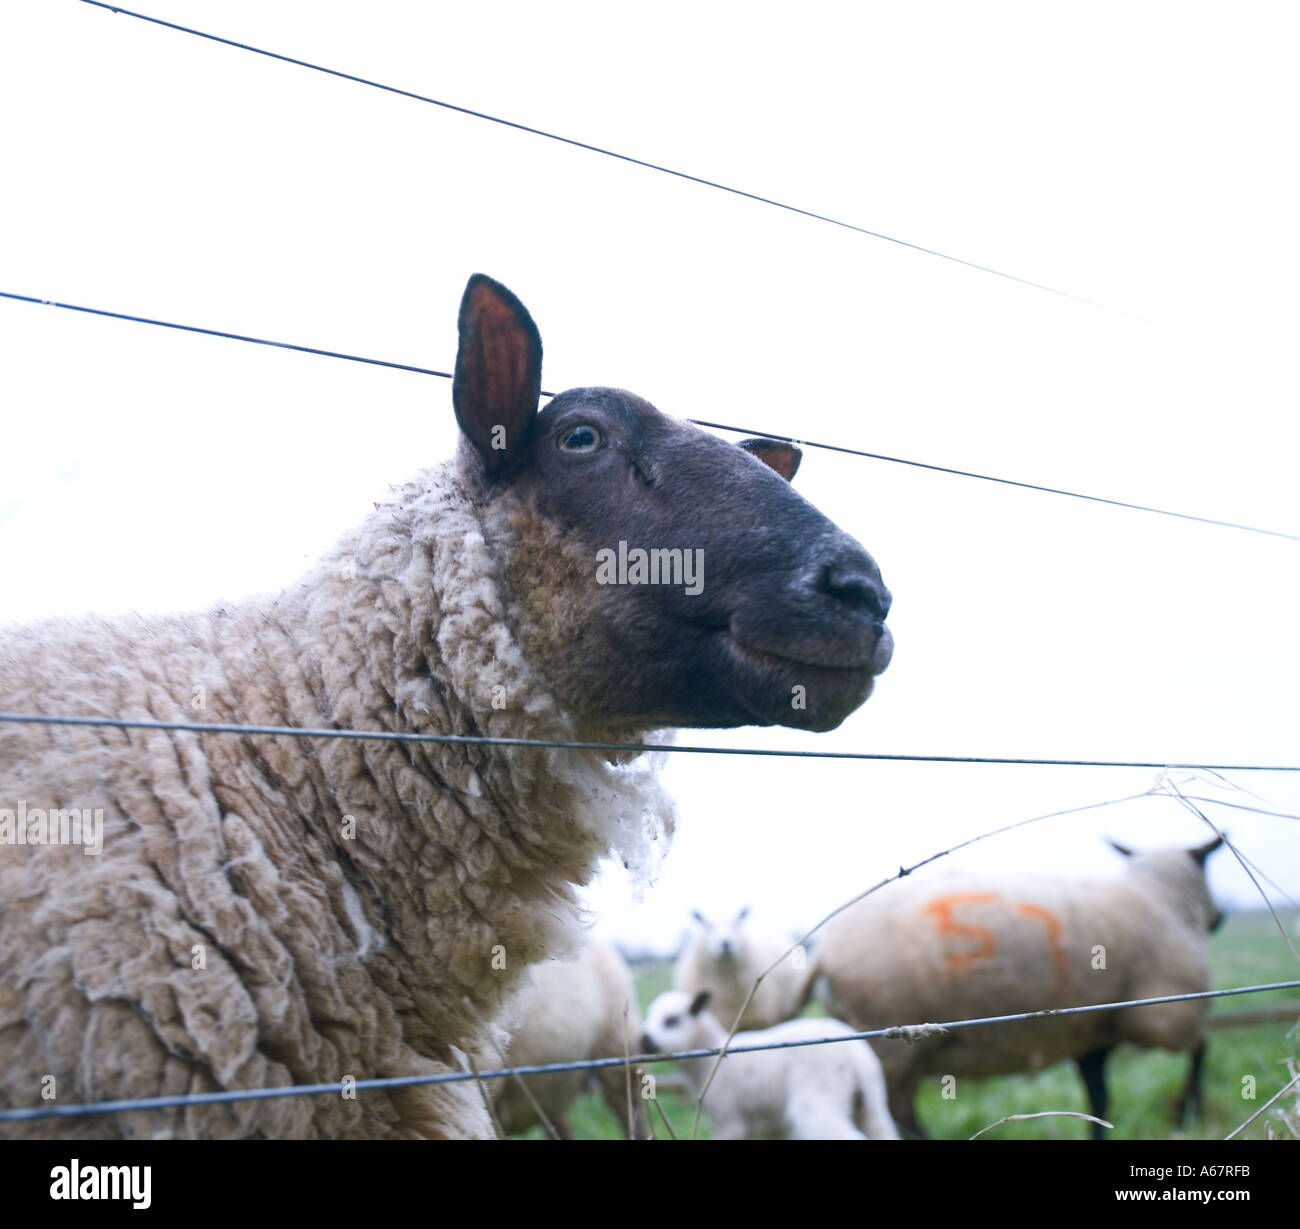 sheep peering through wire fence in field - Stock Image